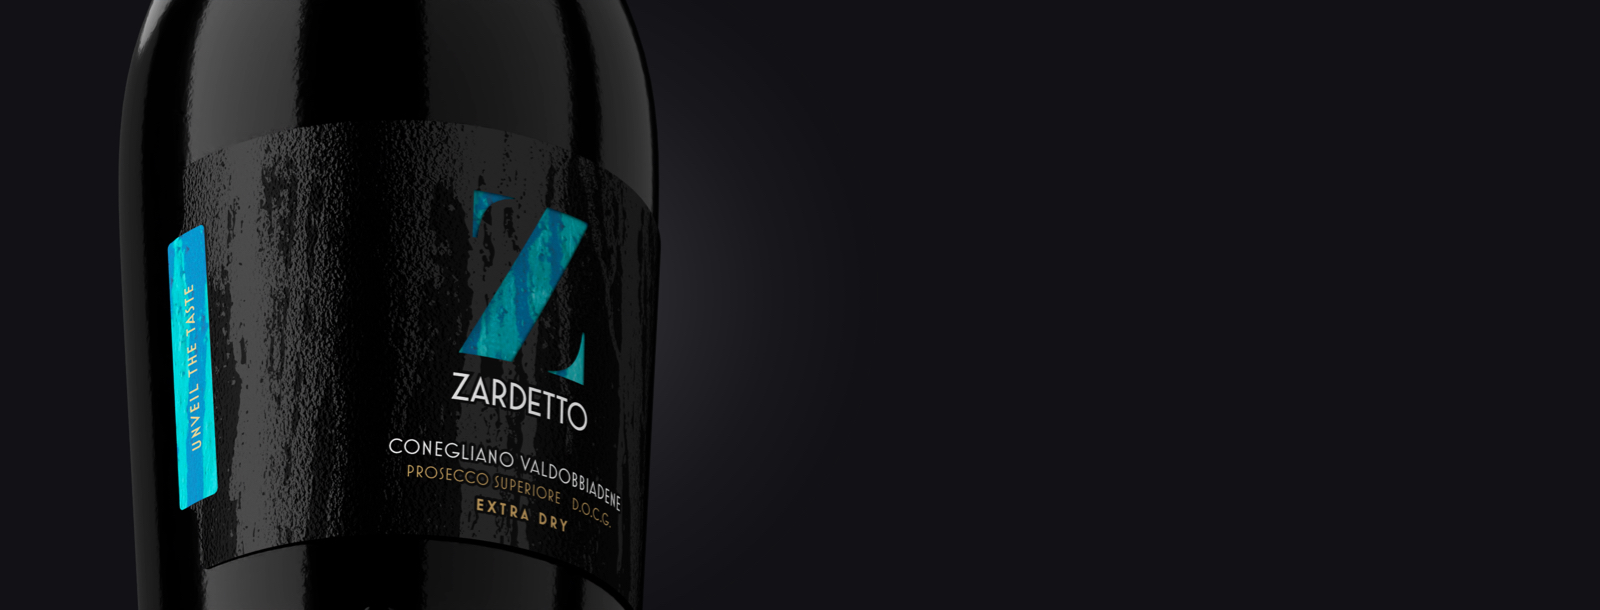 Closed Label on the bottle of Zardetto's Prosecco Superiore Extra Dry